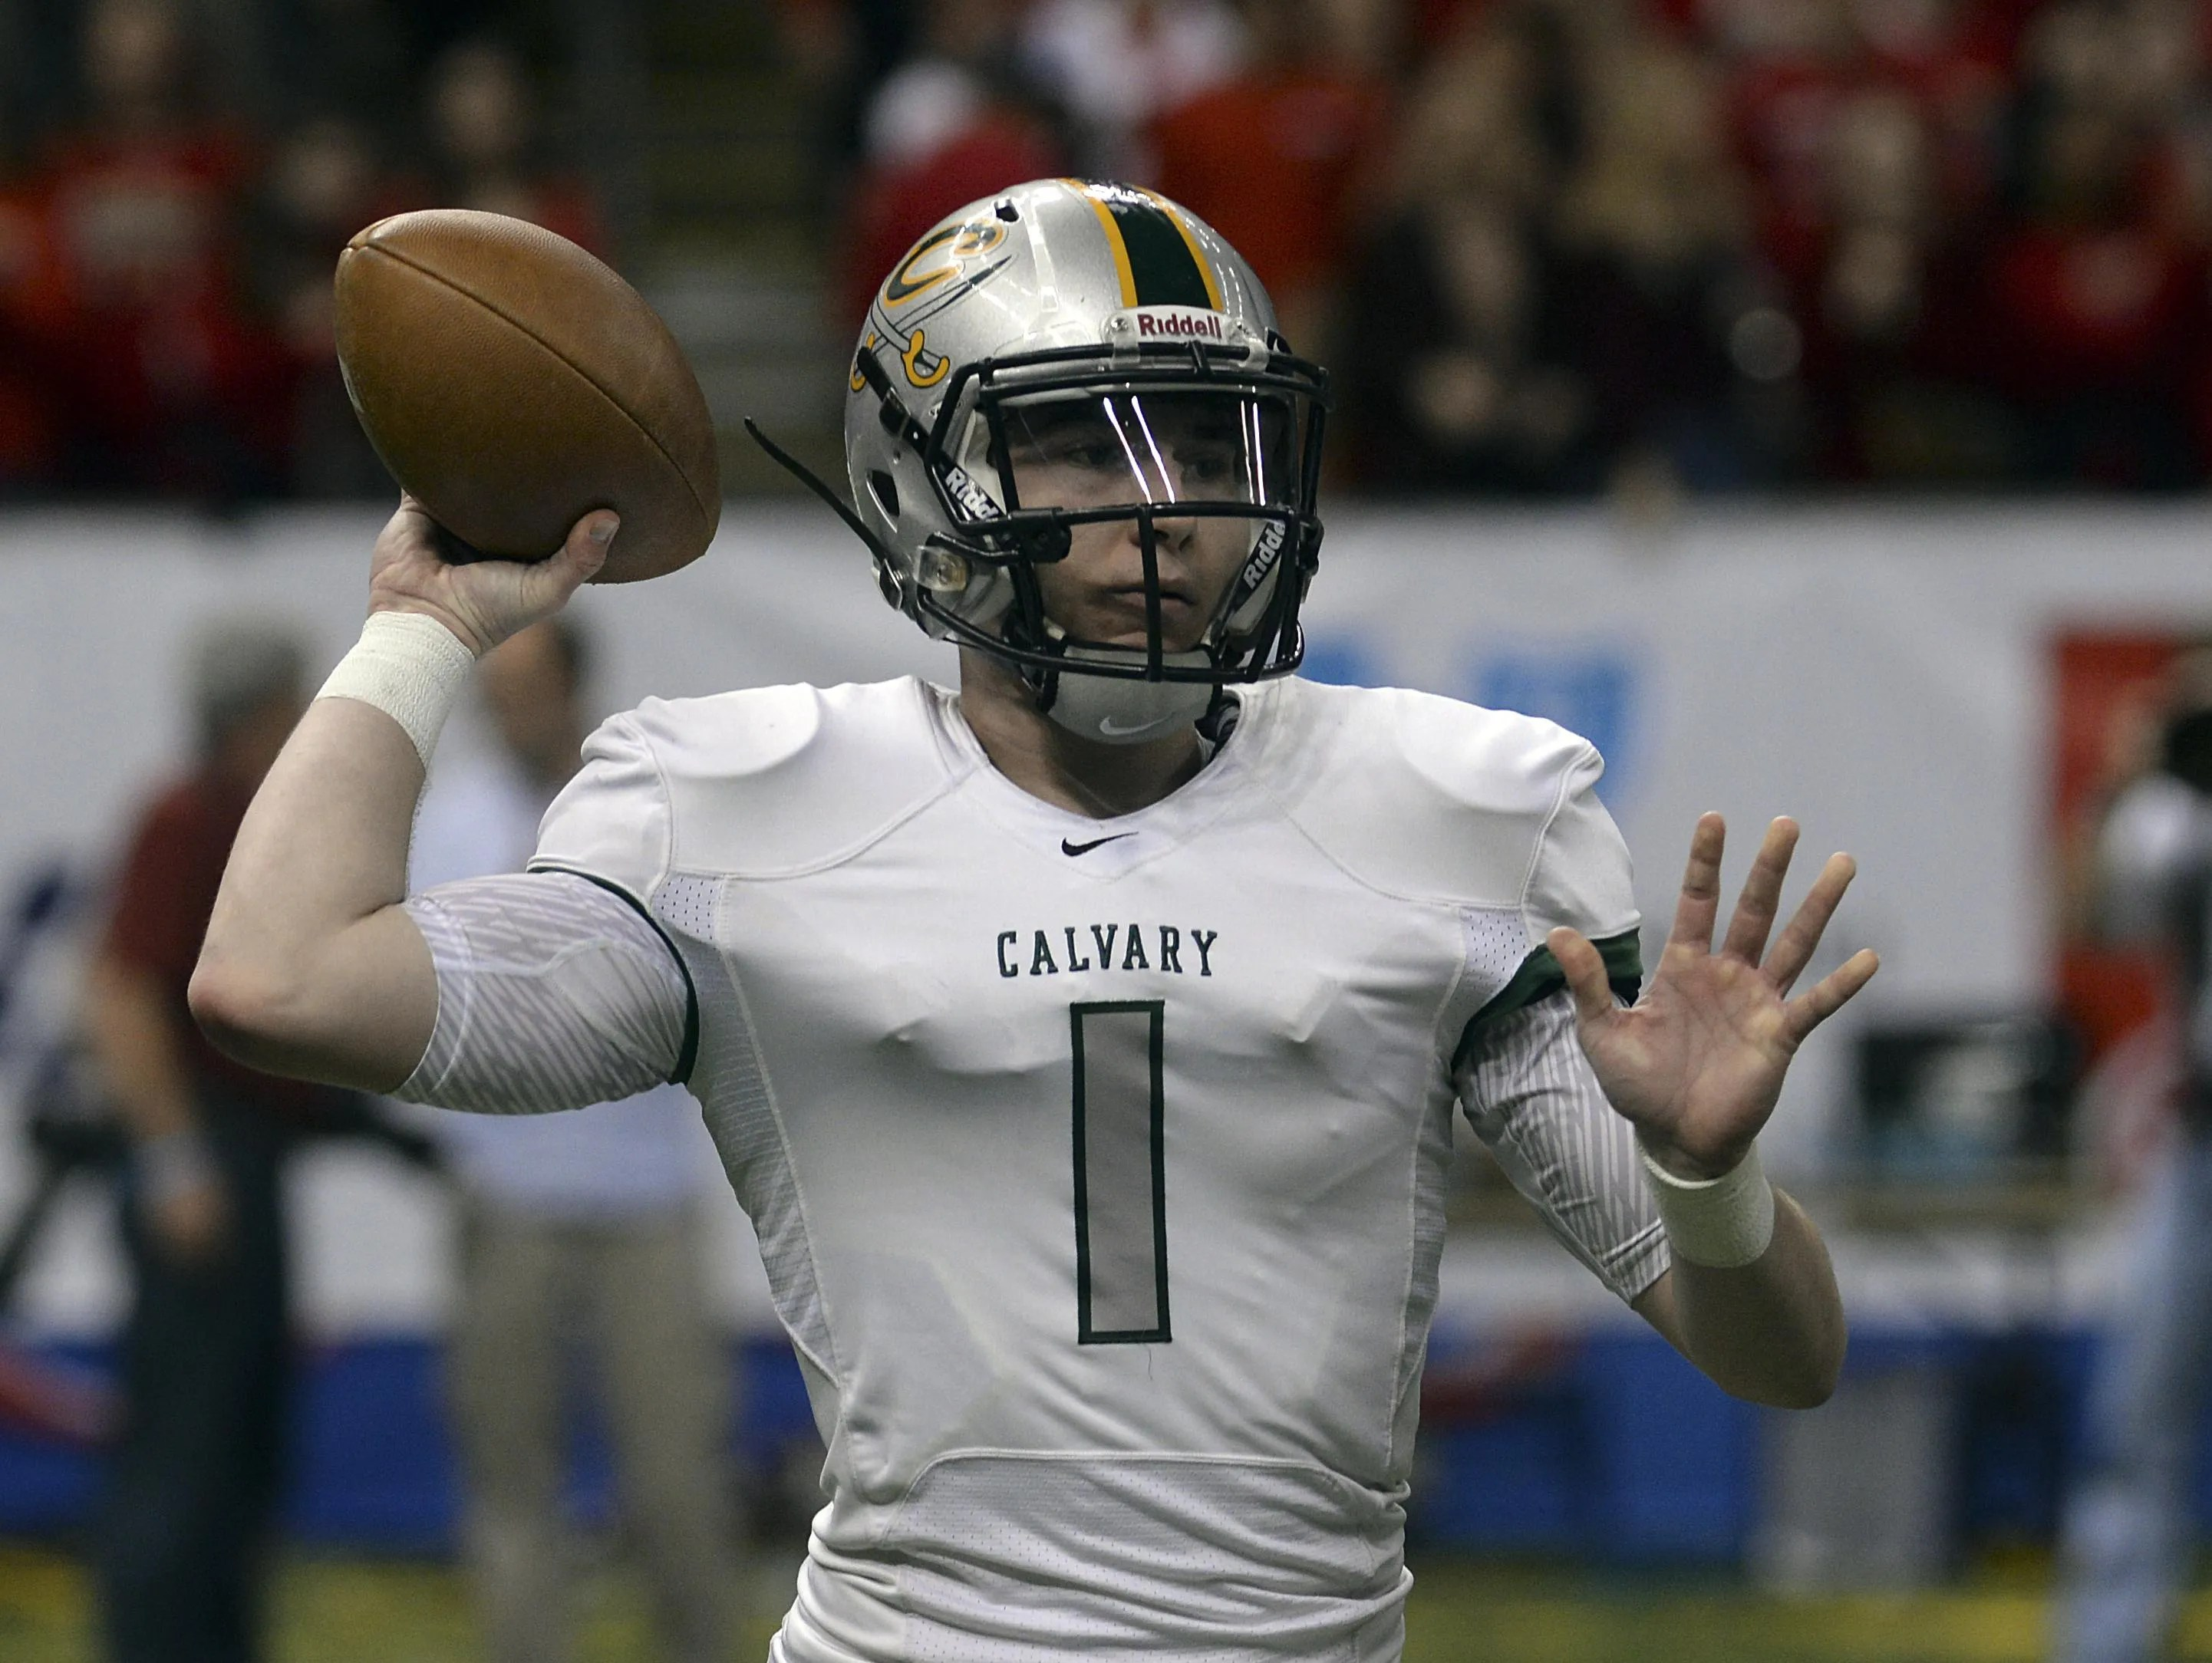 Ole Miss Commit Shea Patterson To Leave Calvary